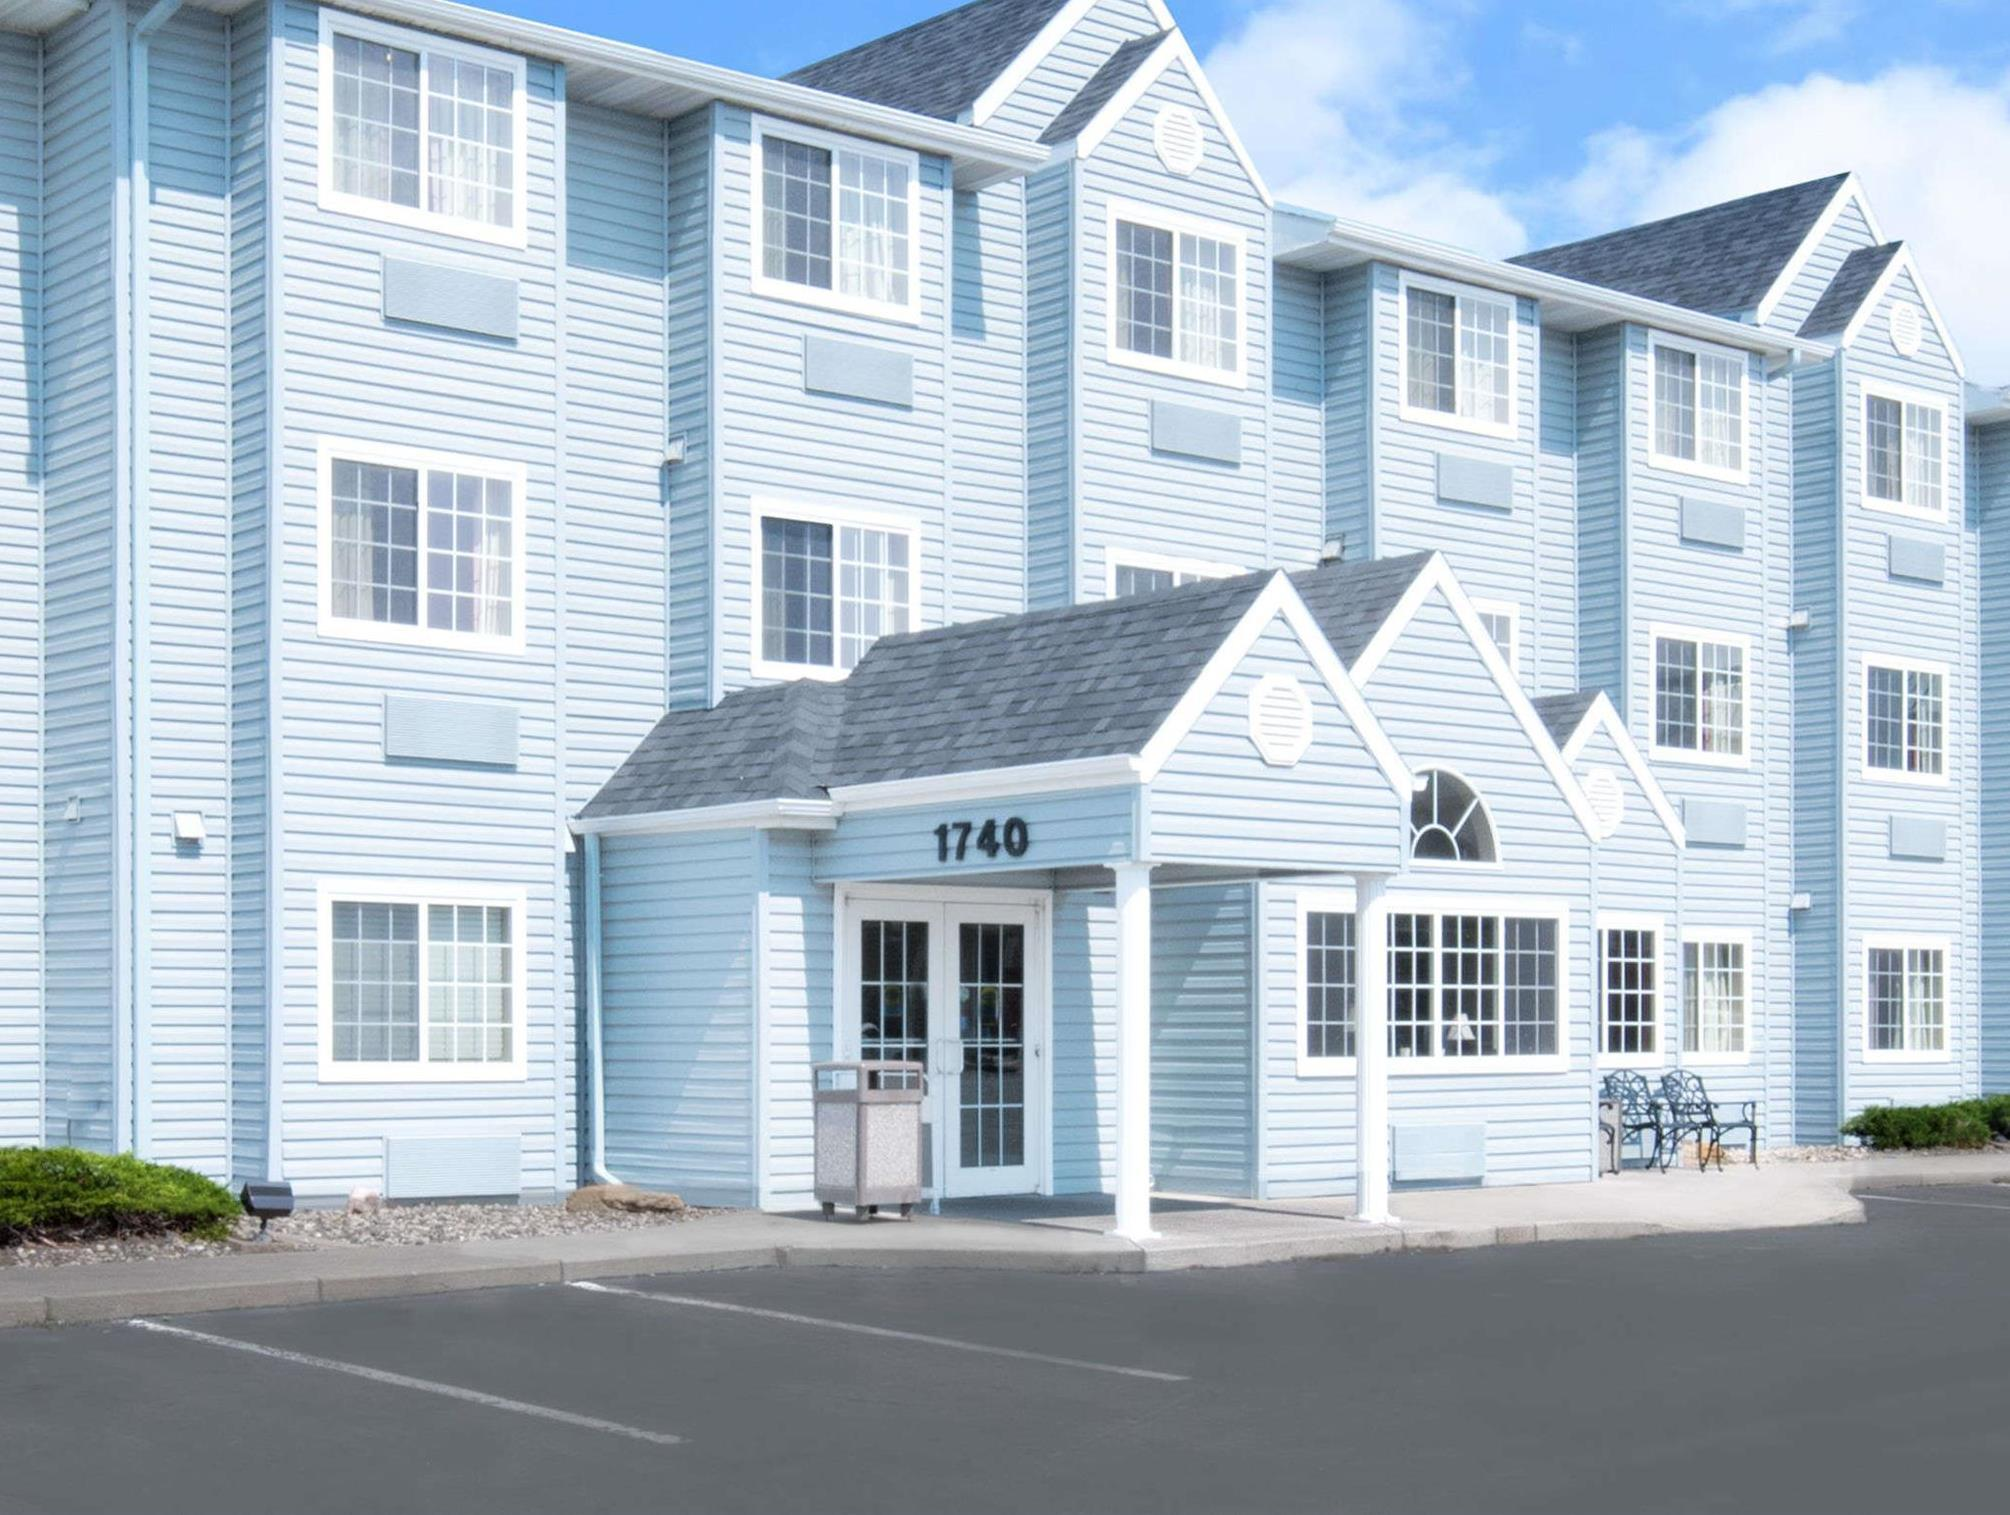 Microtel Inn And Suites By Wyndham Rapid City